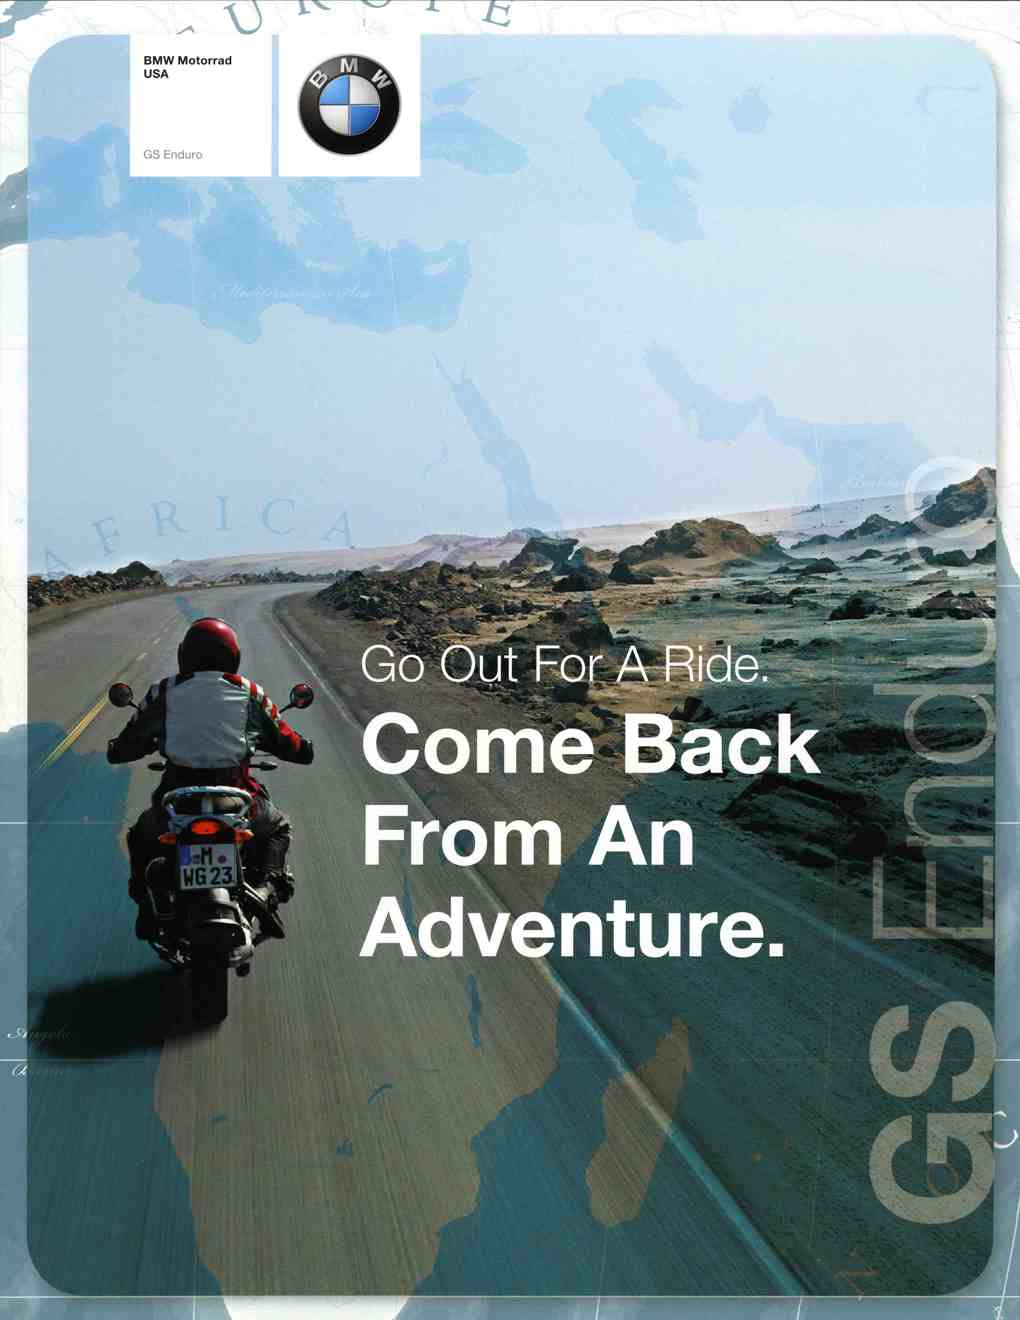 Brochure - Go Out For A Ride. Come Back From An Adventure. BMW Motorrad USA GS Enduro - 2006 GS Full Model Line Brochure